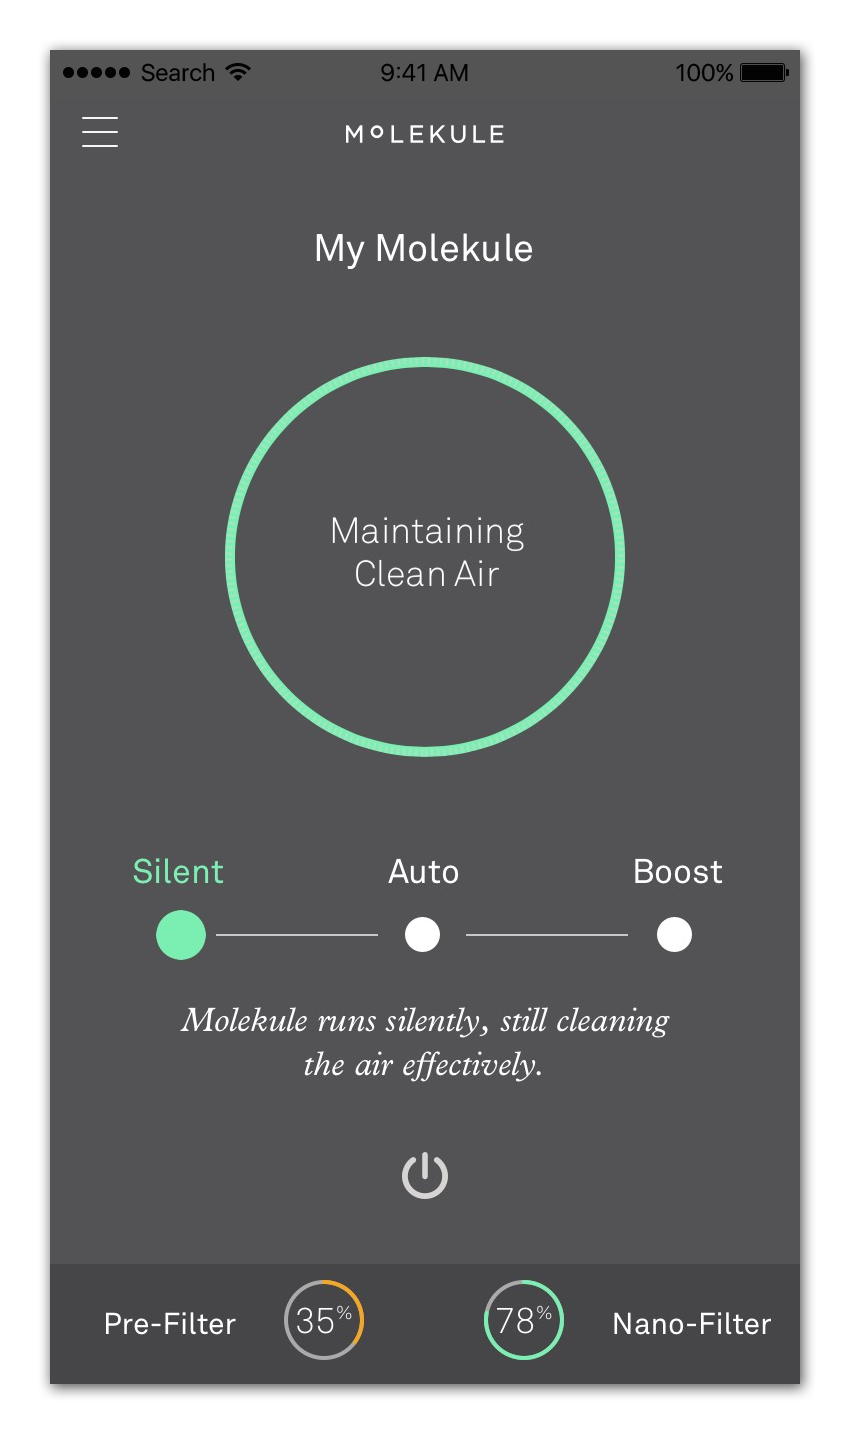 Maintaining-Clean-Air-copy.png